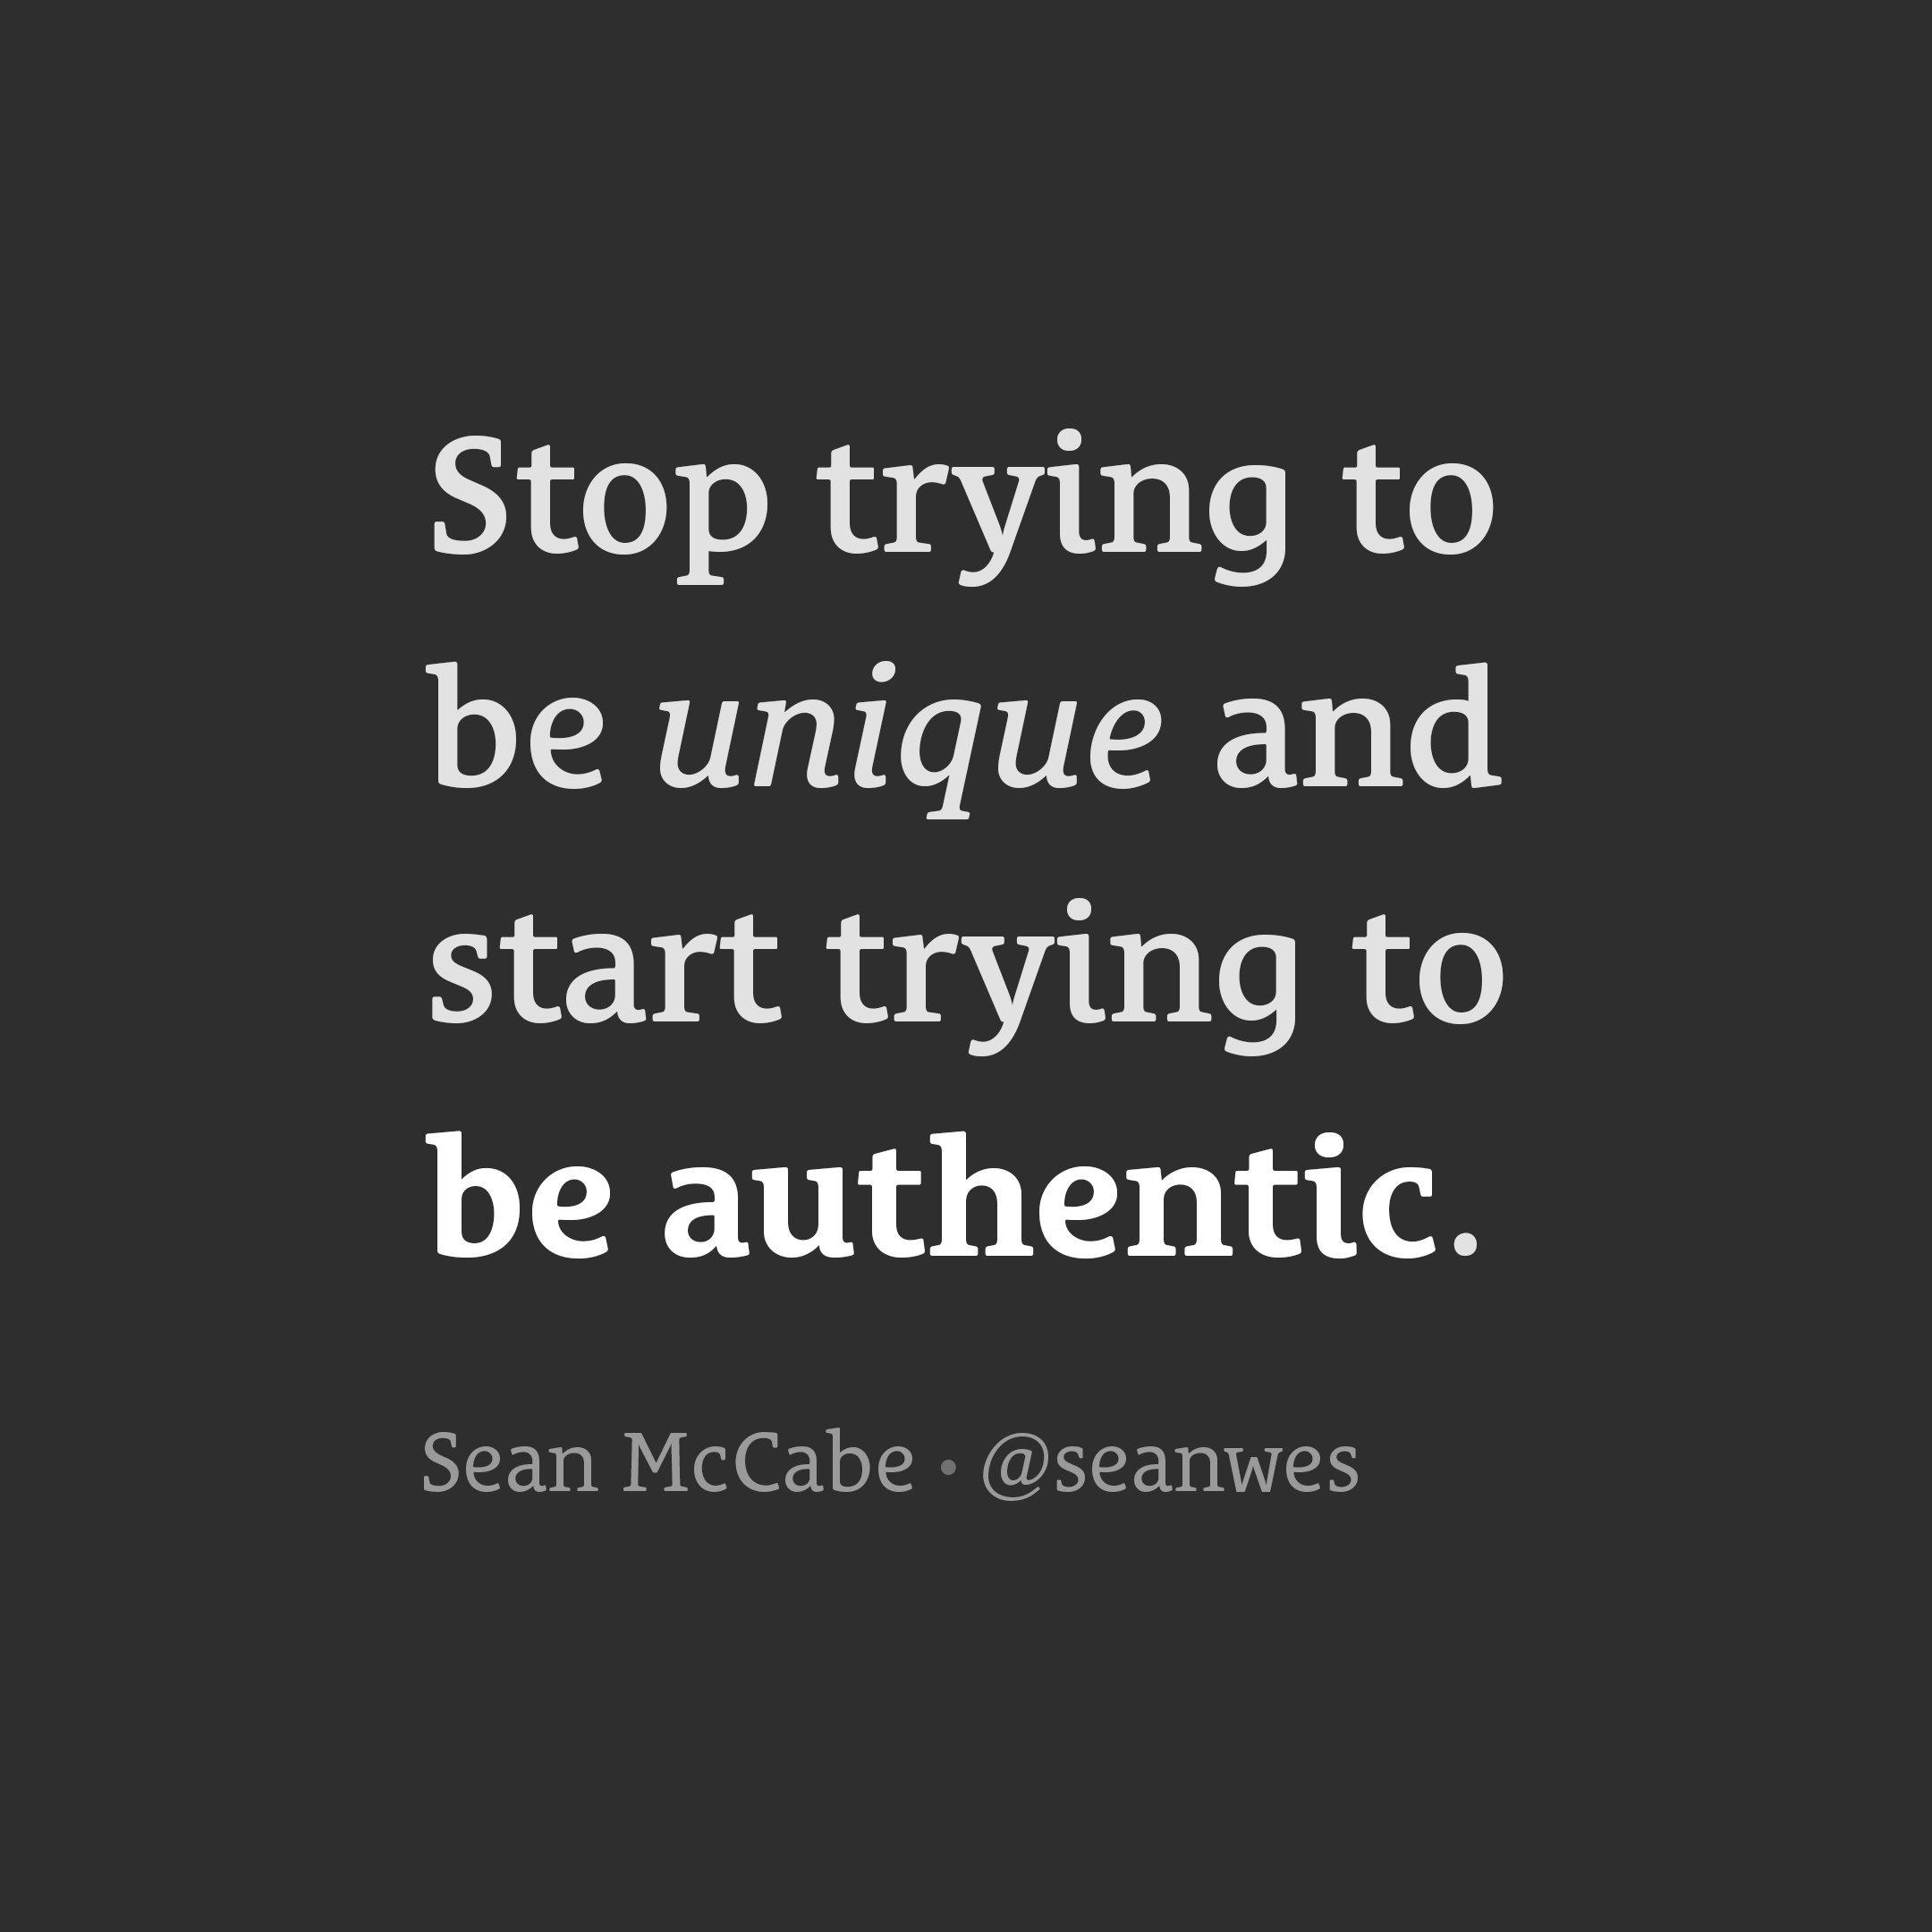 Stop trying to be unique and start trying to be authentic.